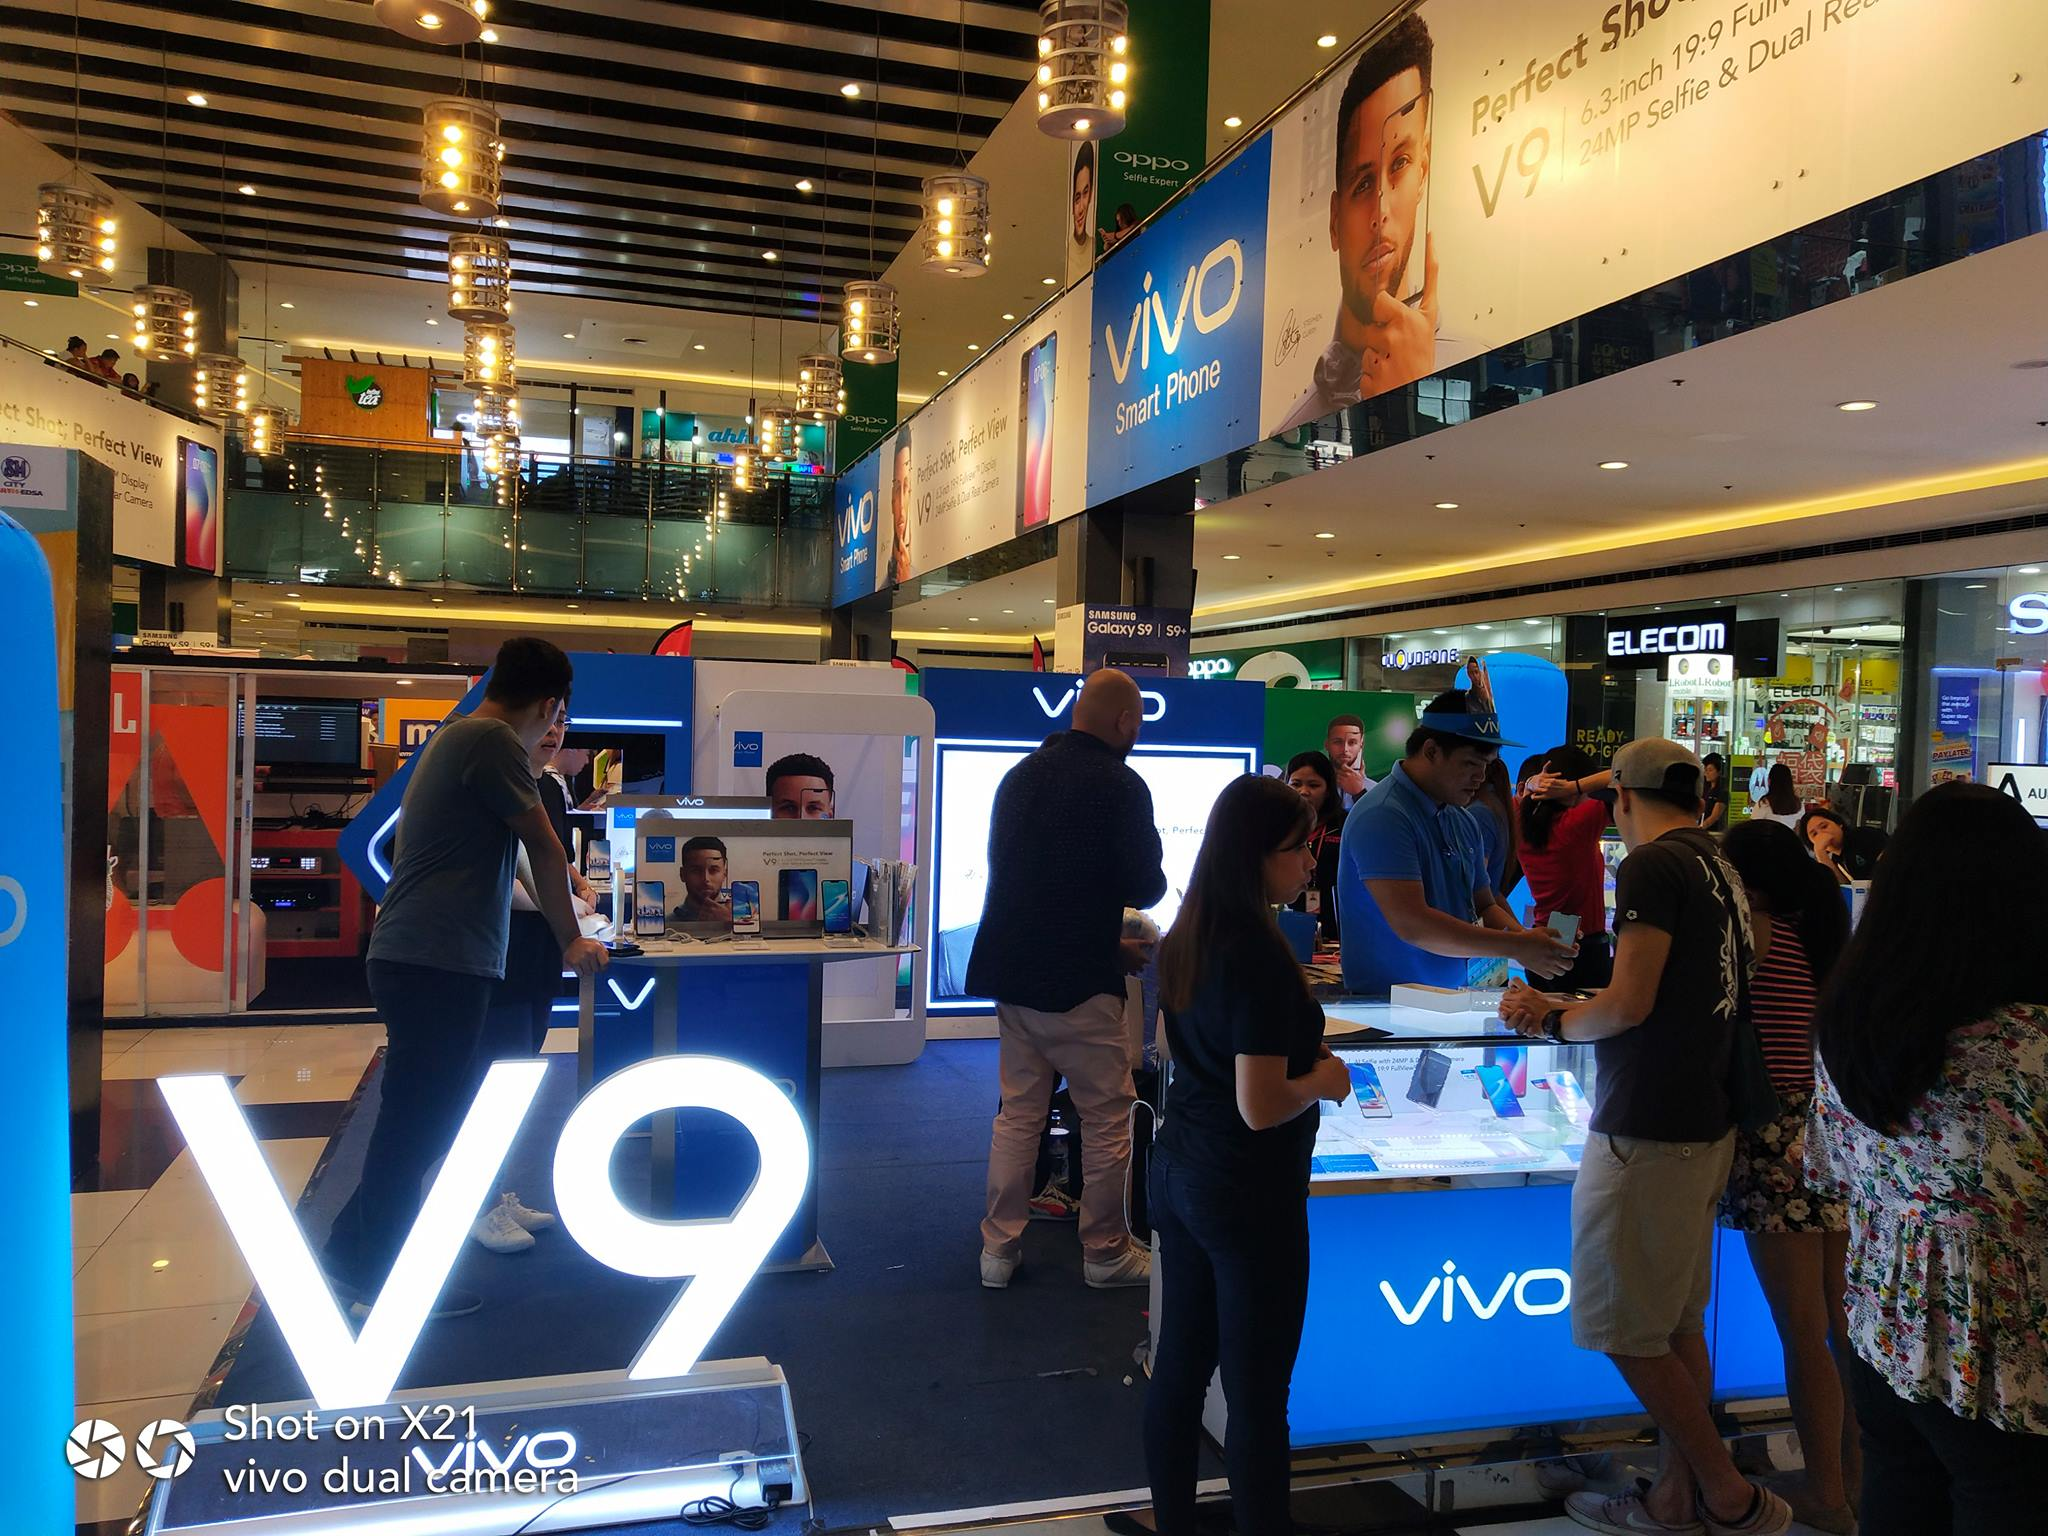 The Vivo booth at the Mobile Fest 2018